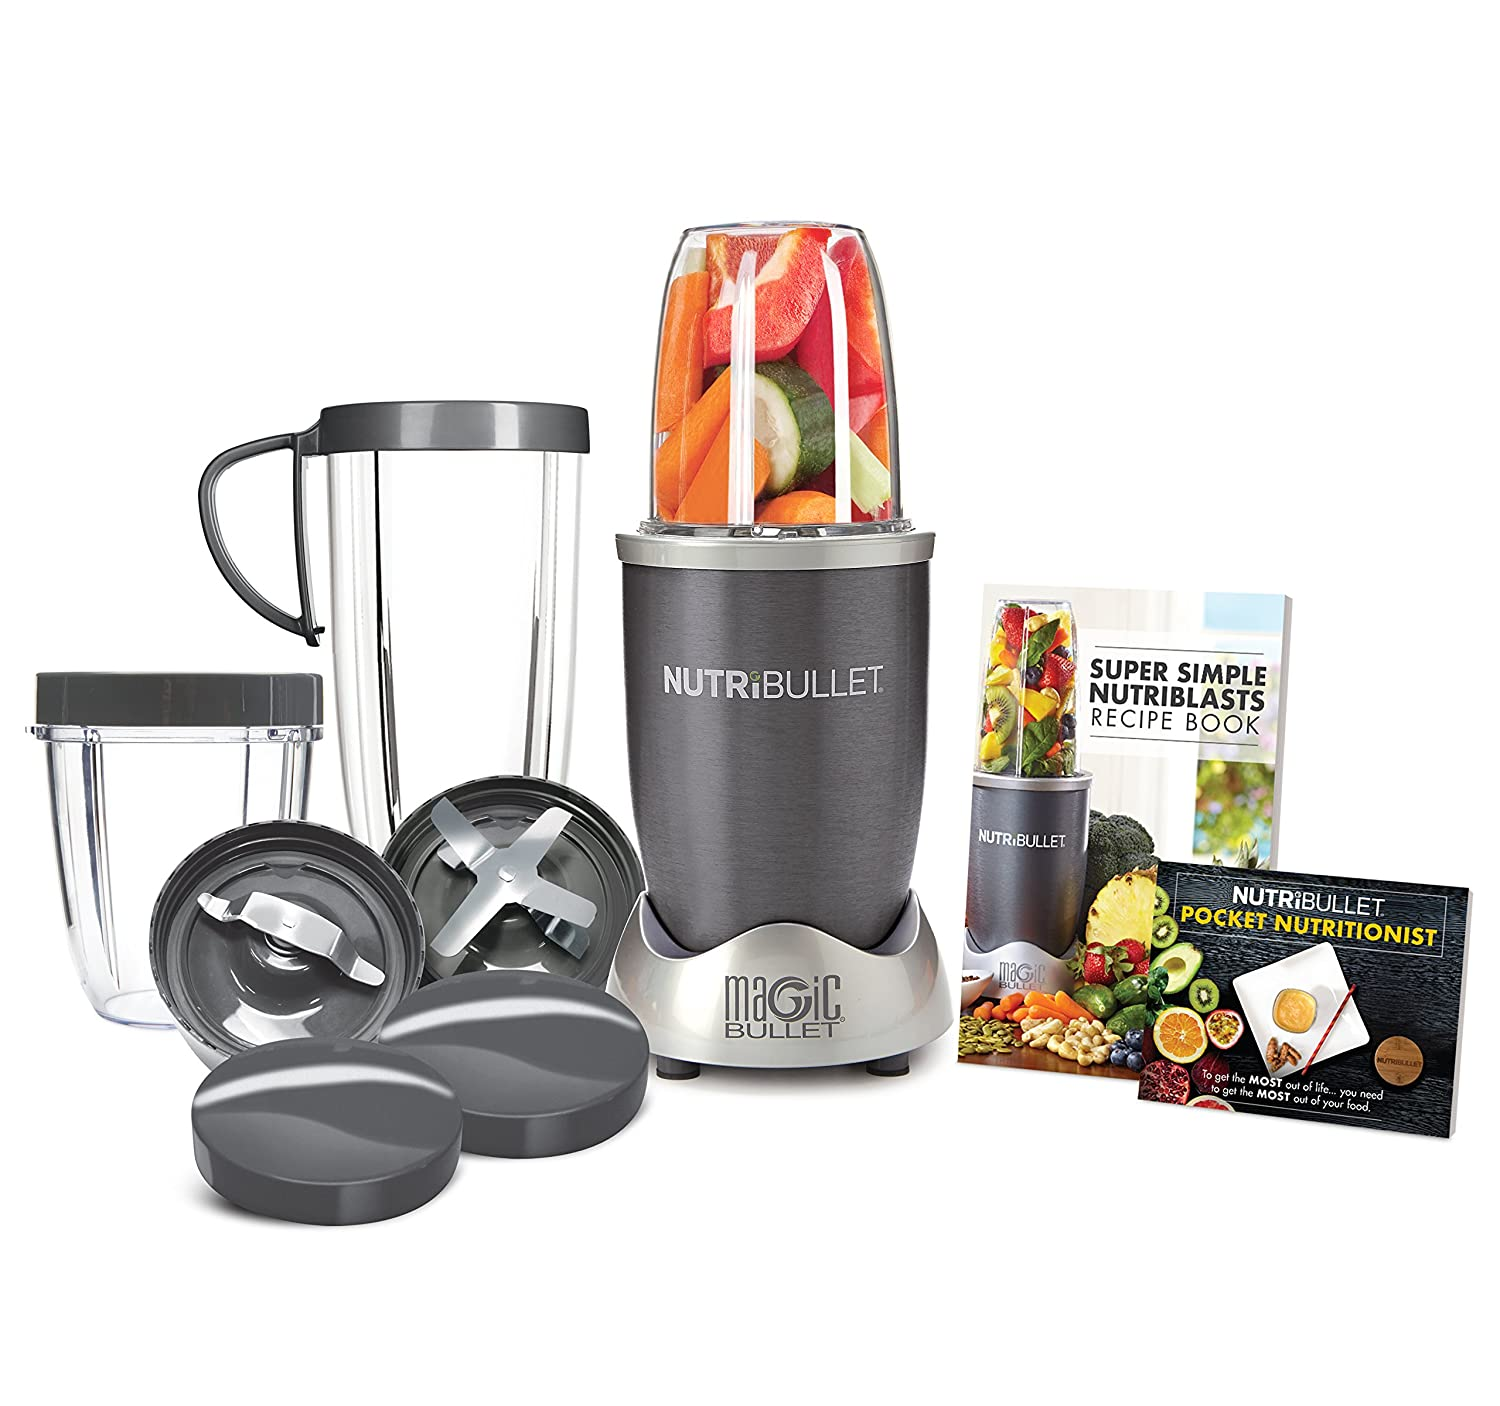 Amazon.com: NutriBullet NBR-1201 12-Piece High-Speed Blender/Mixer System,  Gray (600 Watts): Electric Countertop Blenders: Kitchen & Dining